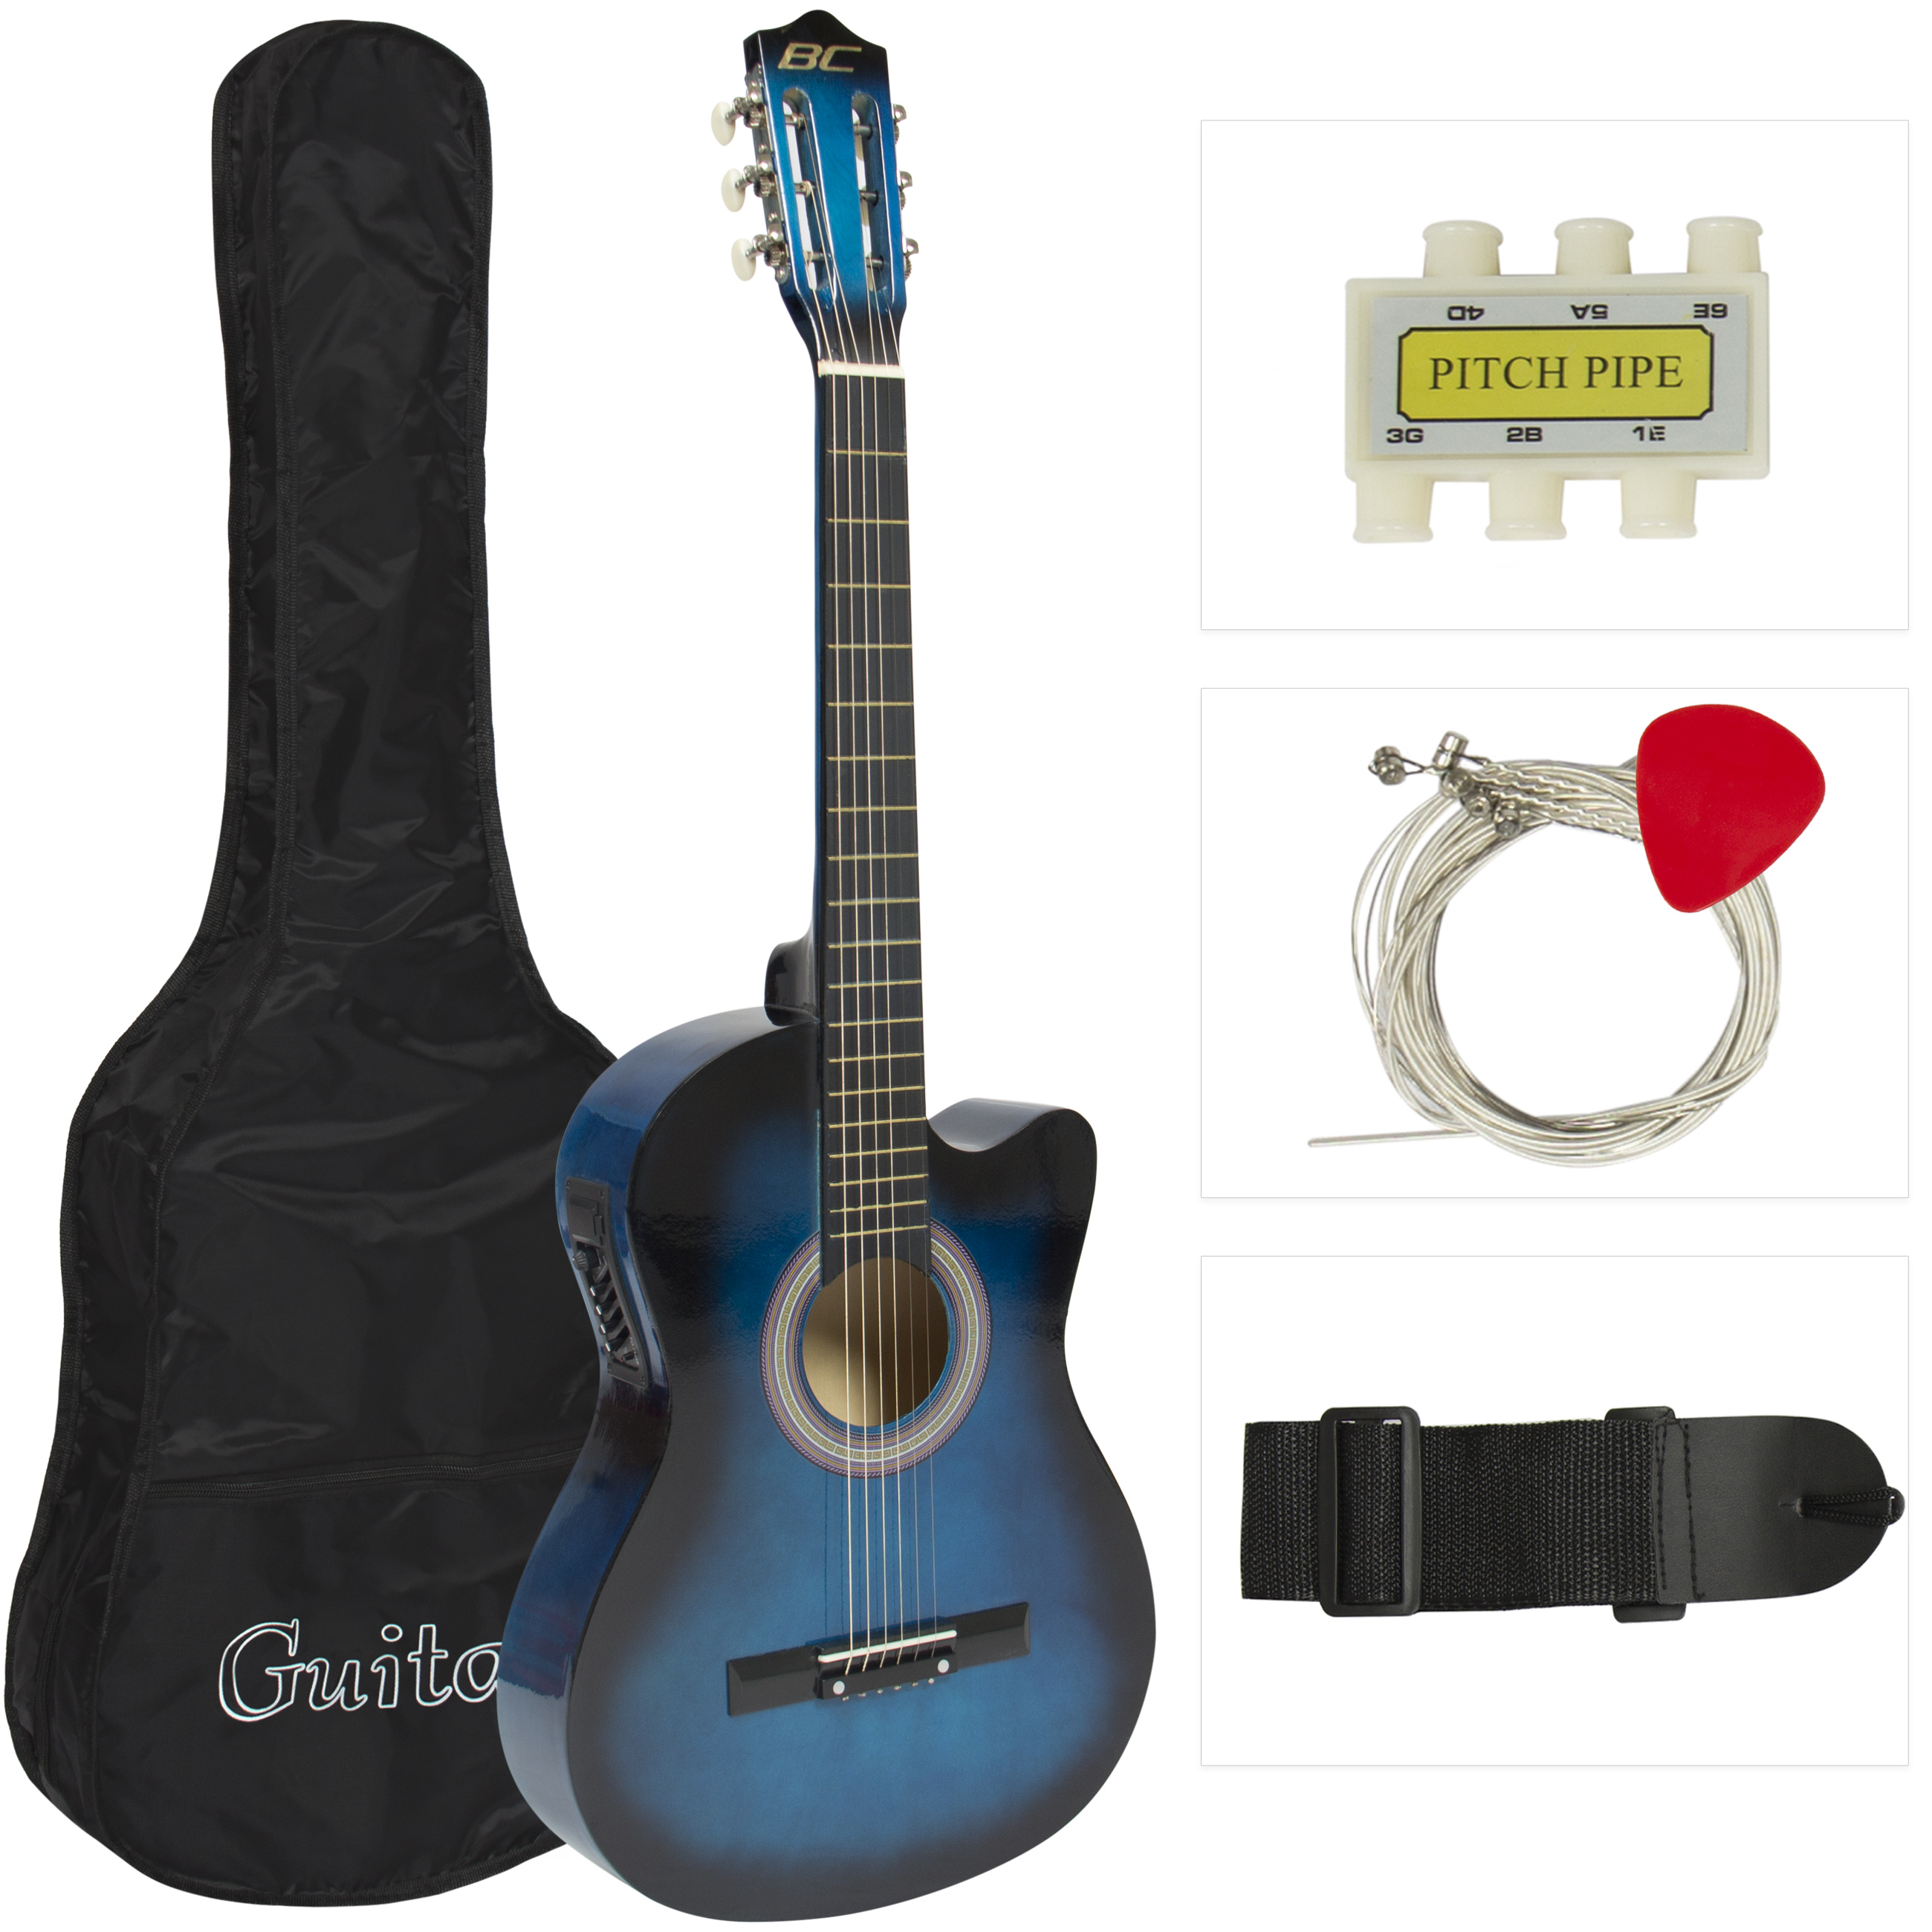 Best Choice Products Electric Acoustic Guitar Cutaway Design With Guitar Case, Strap, Tuner New - Blue